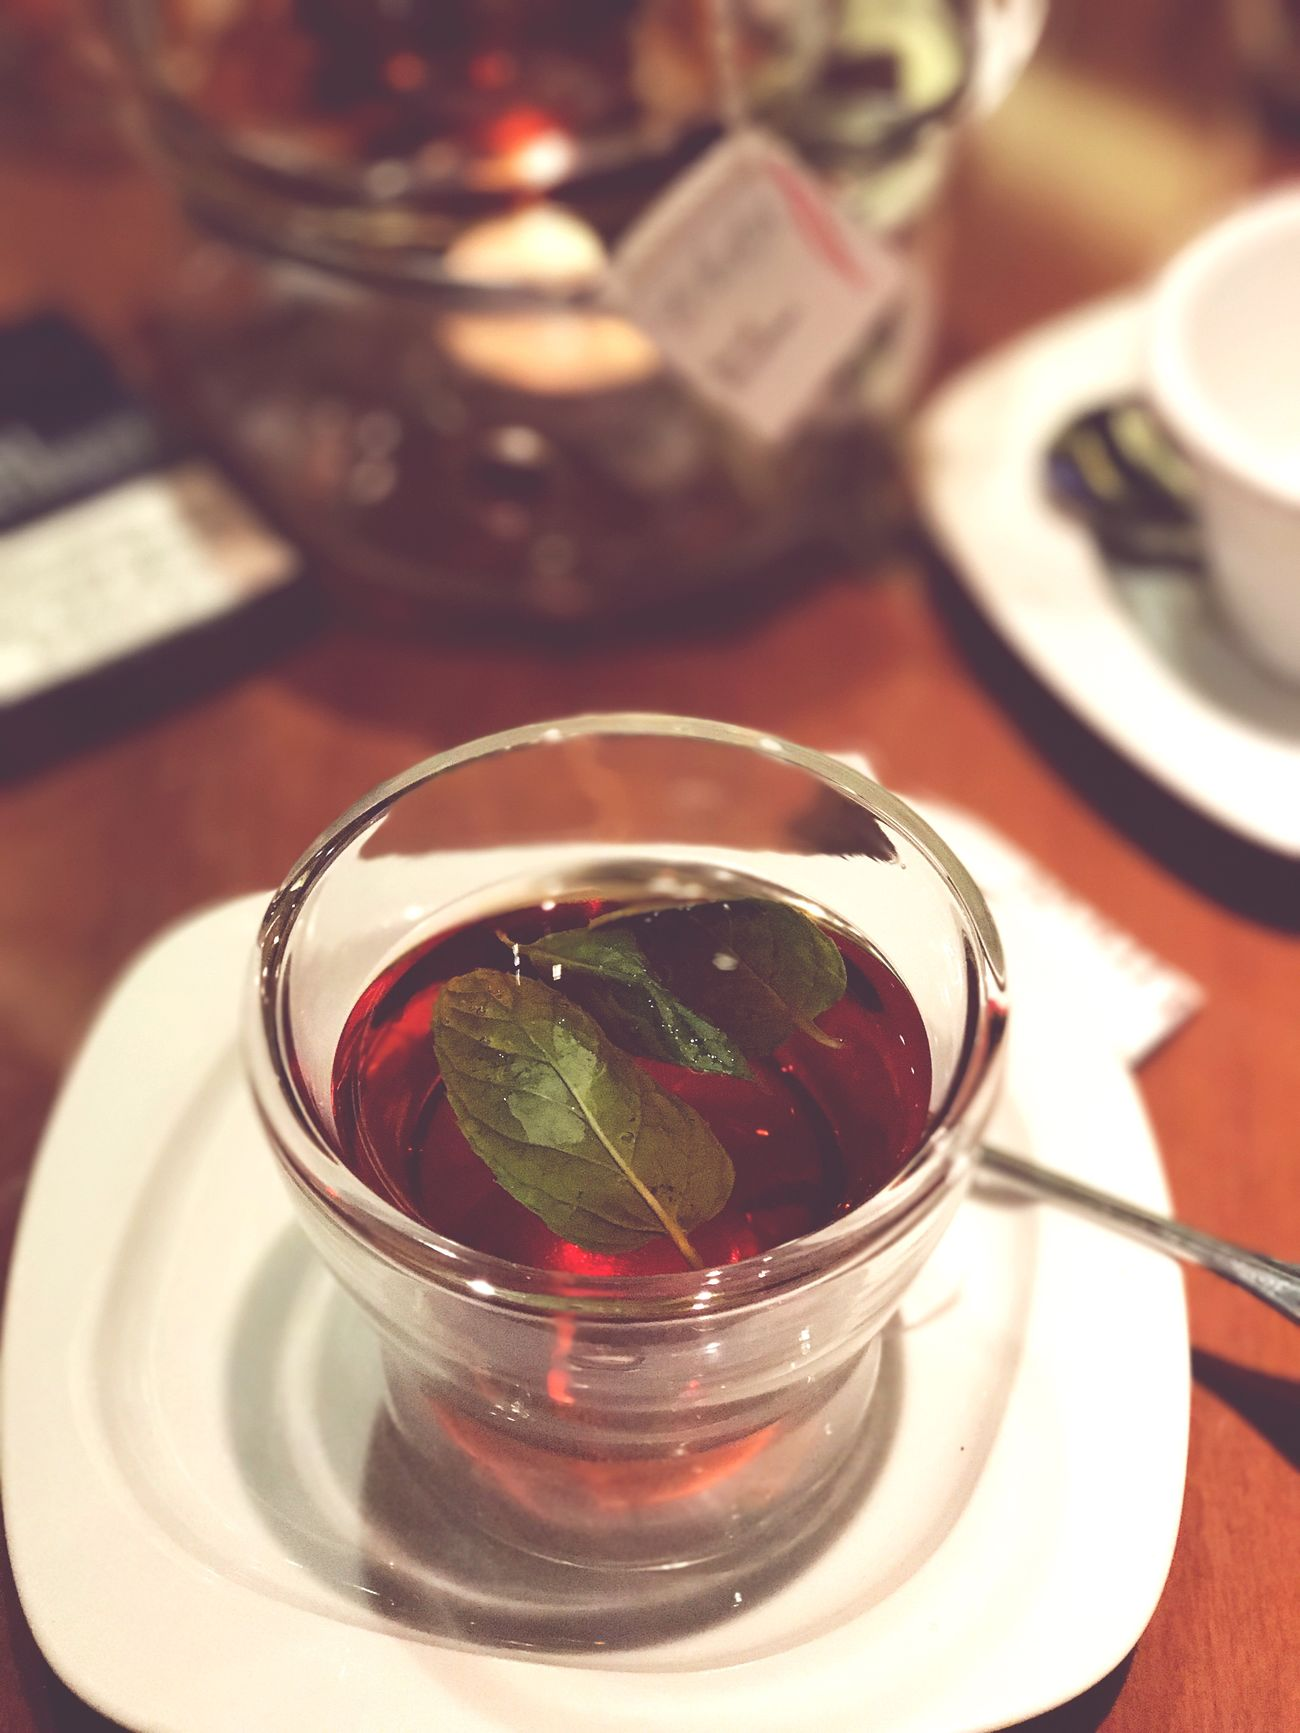 Tea - Hot Drink Food And Drink Tea Cup Drink Mint Tea Teapot Refreshment Indoors  Focus On Foreground Close-up IPhoneography IPhone Photography IPhone7Plus Iphonesia Iphone7plusphoto